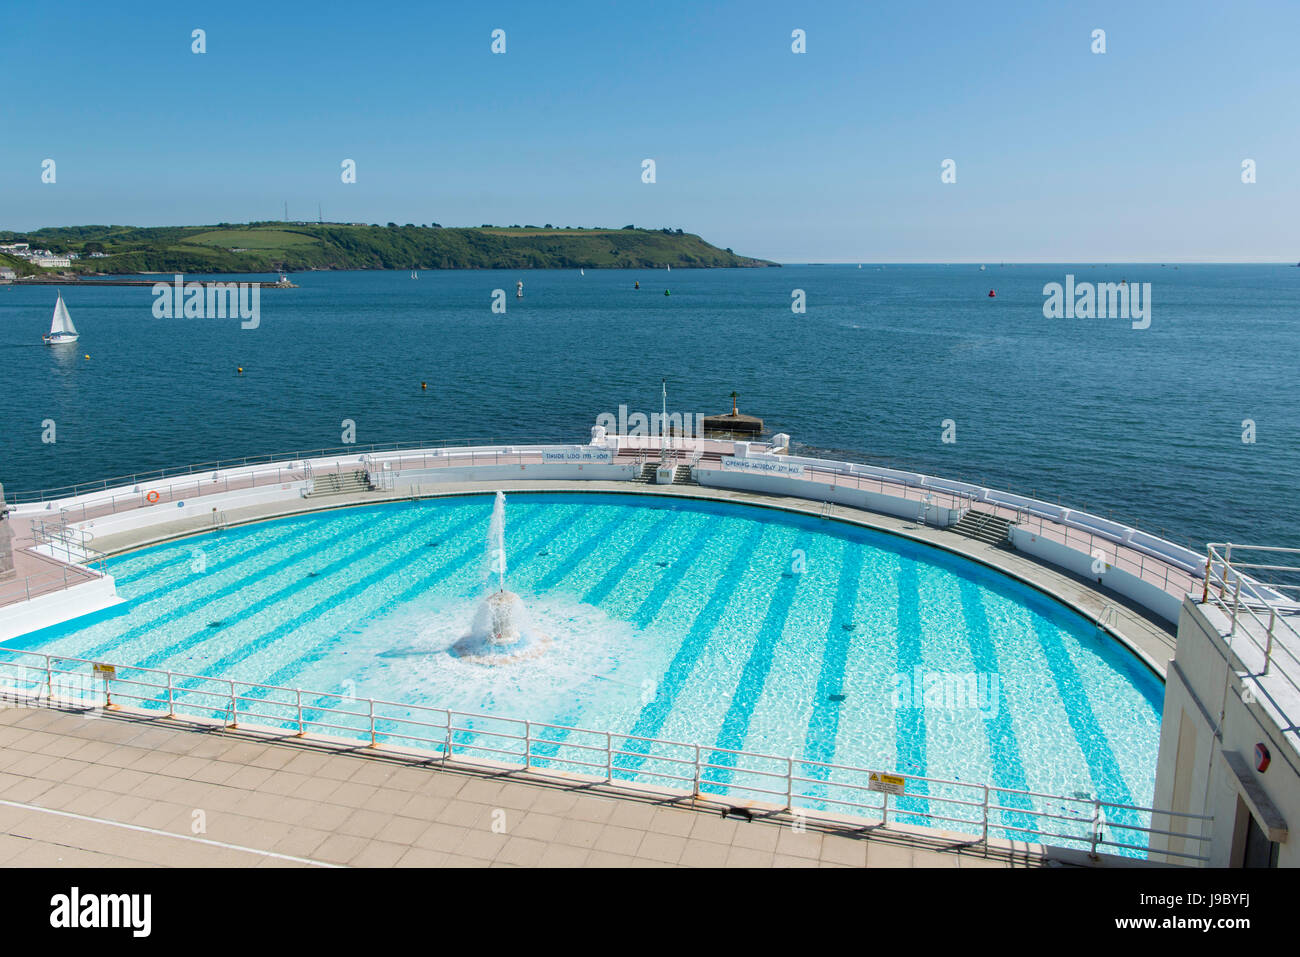 lido plymouth stock photos lido plymouth stock images alamy